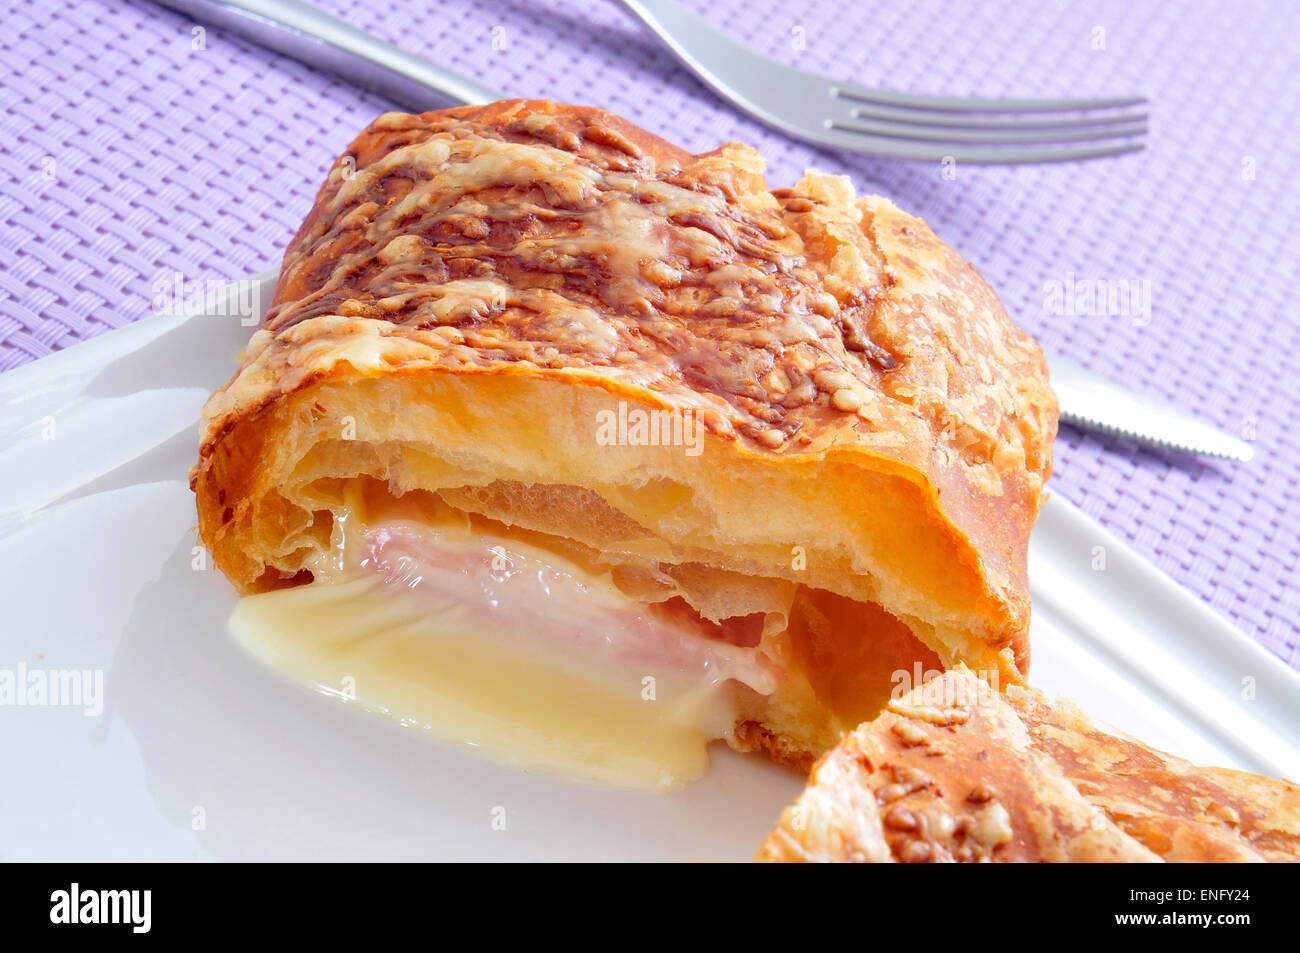 plate with a ham and cheese croissant on a set table with a purple tablecloth - Stock Image